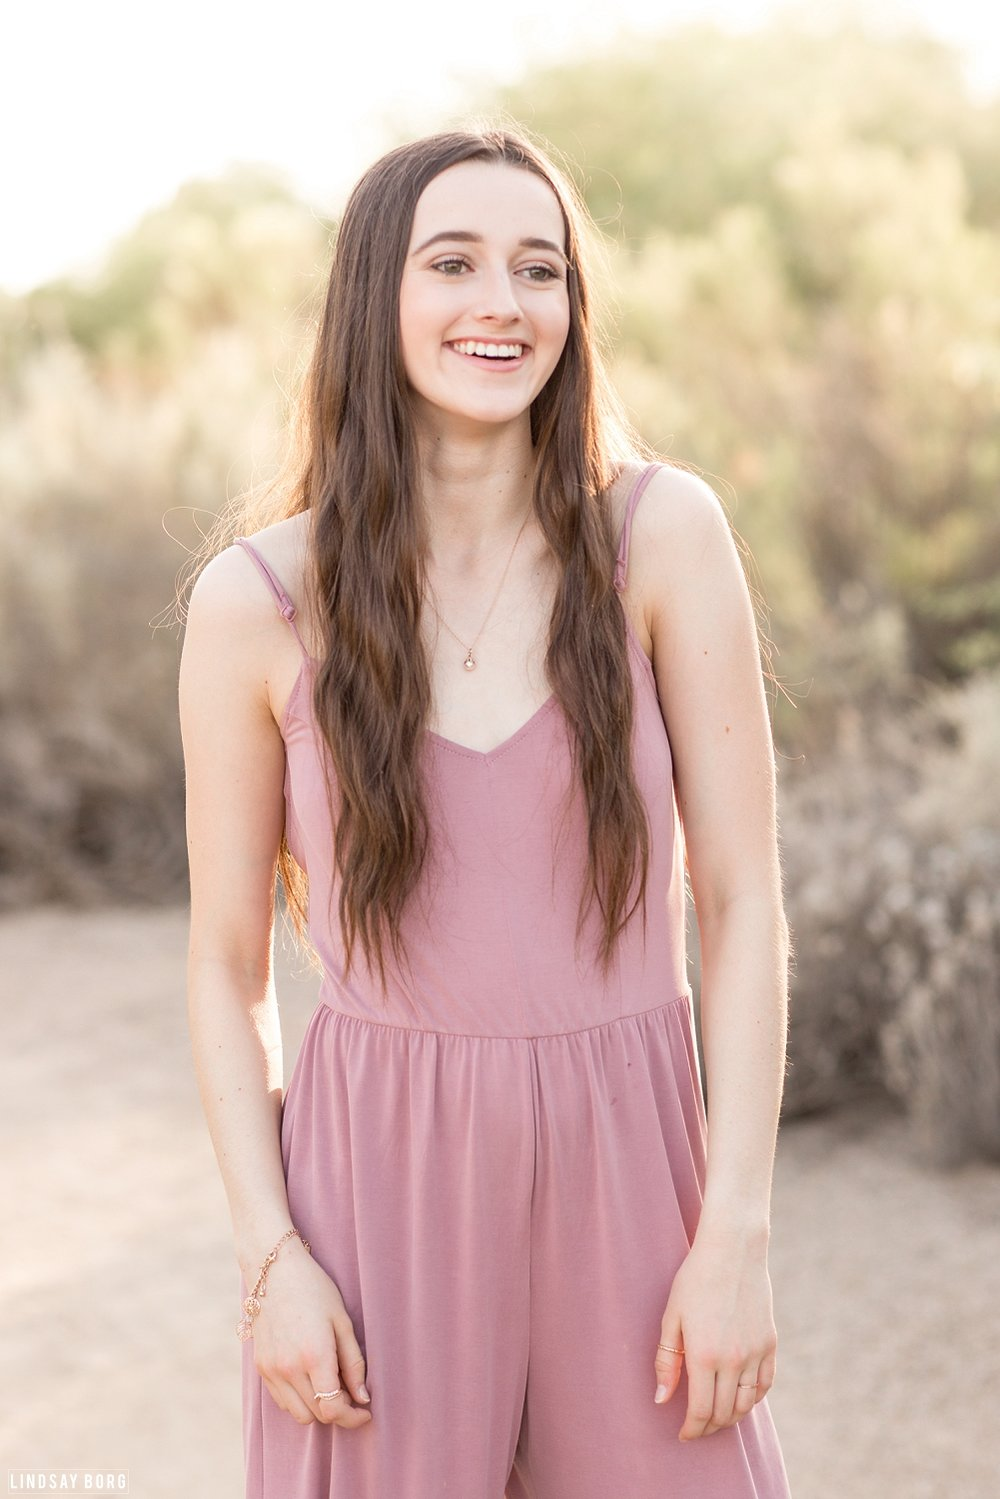 Lindsay-Borg-Photography-arizona-senior-wedding-portrait-photographer-az_3964.jpg